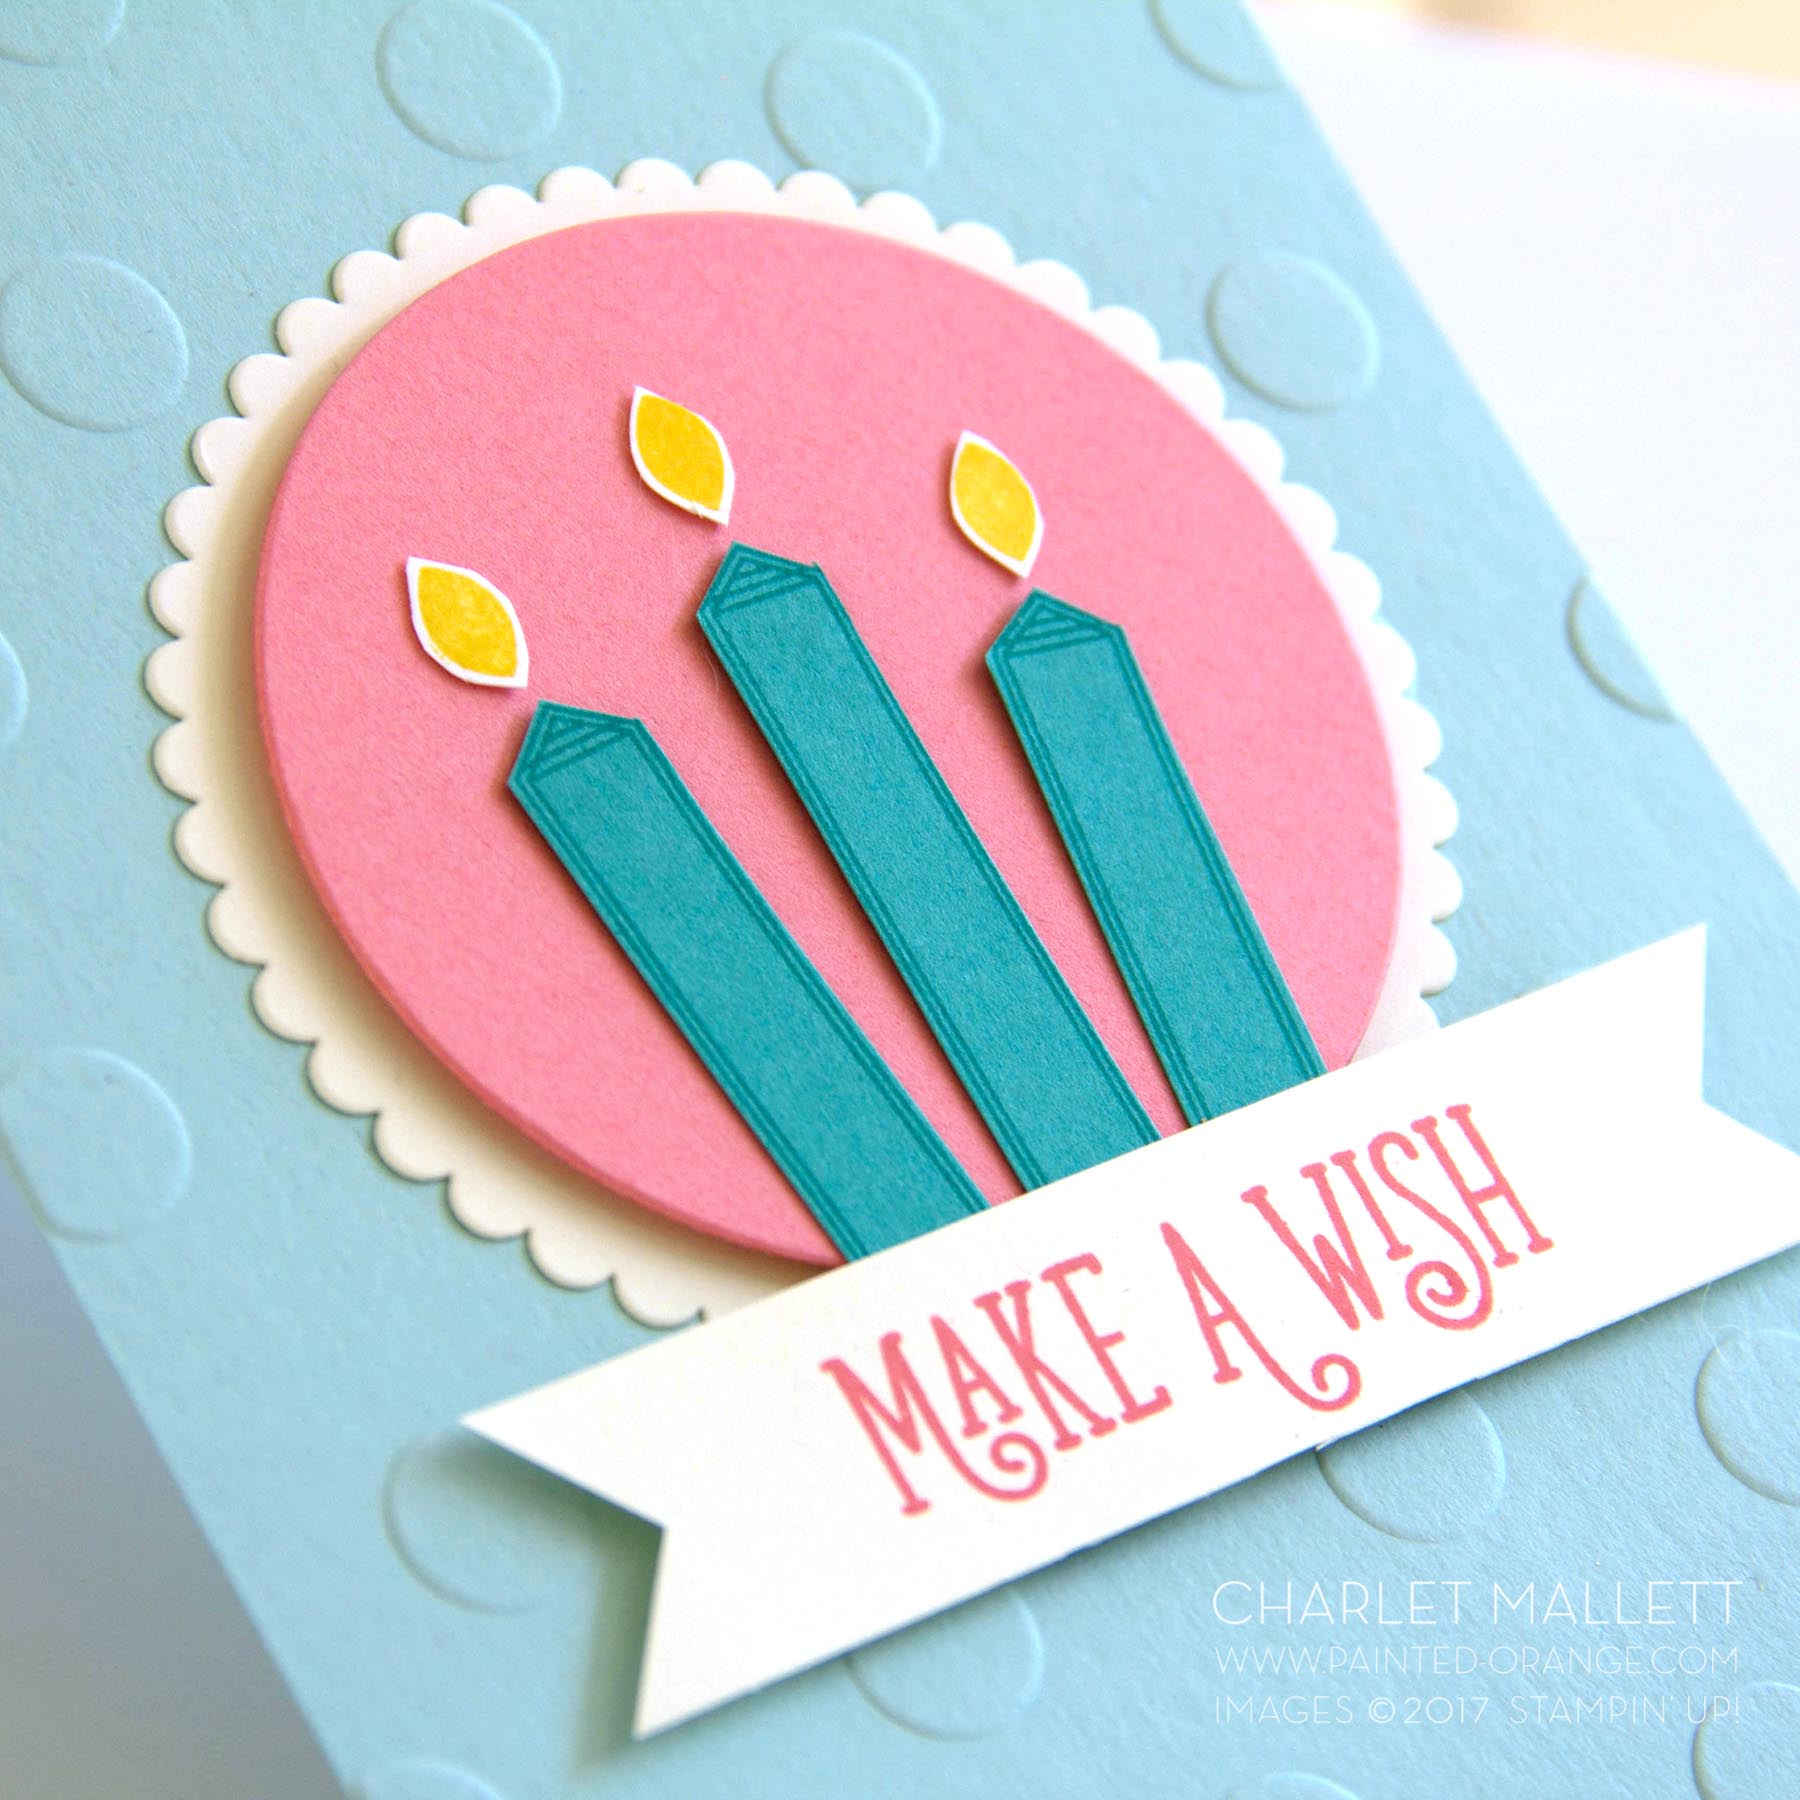 Happy Birthday Gorgeous - Charlet Mallett, create large candles with the label and petal stamp images.